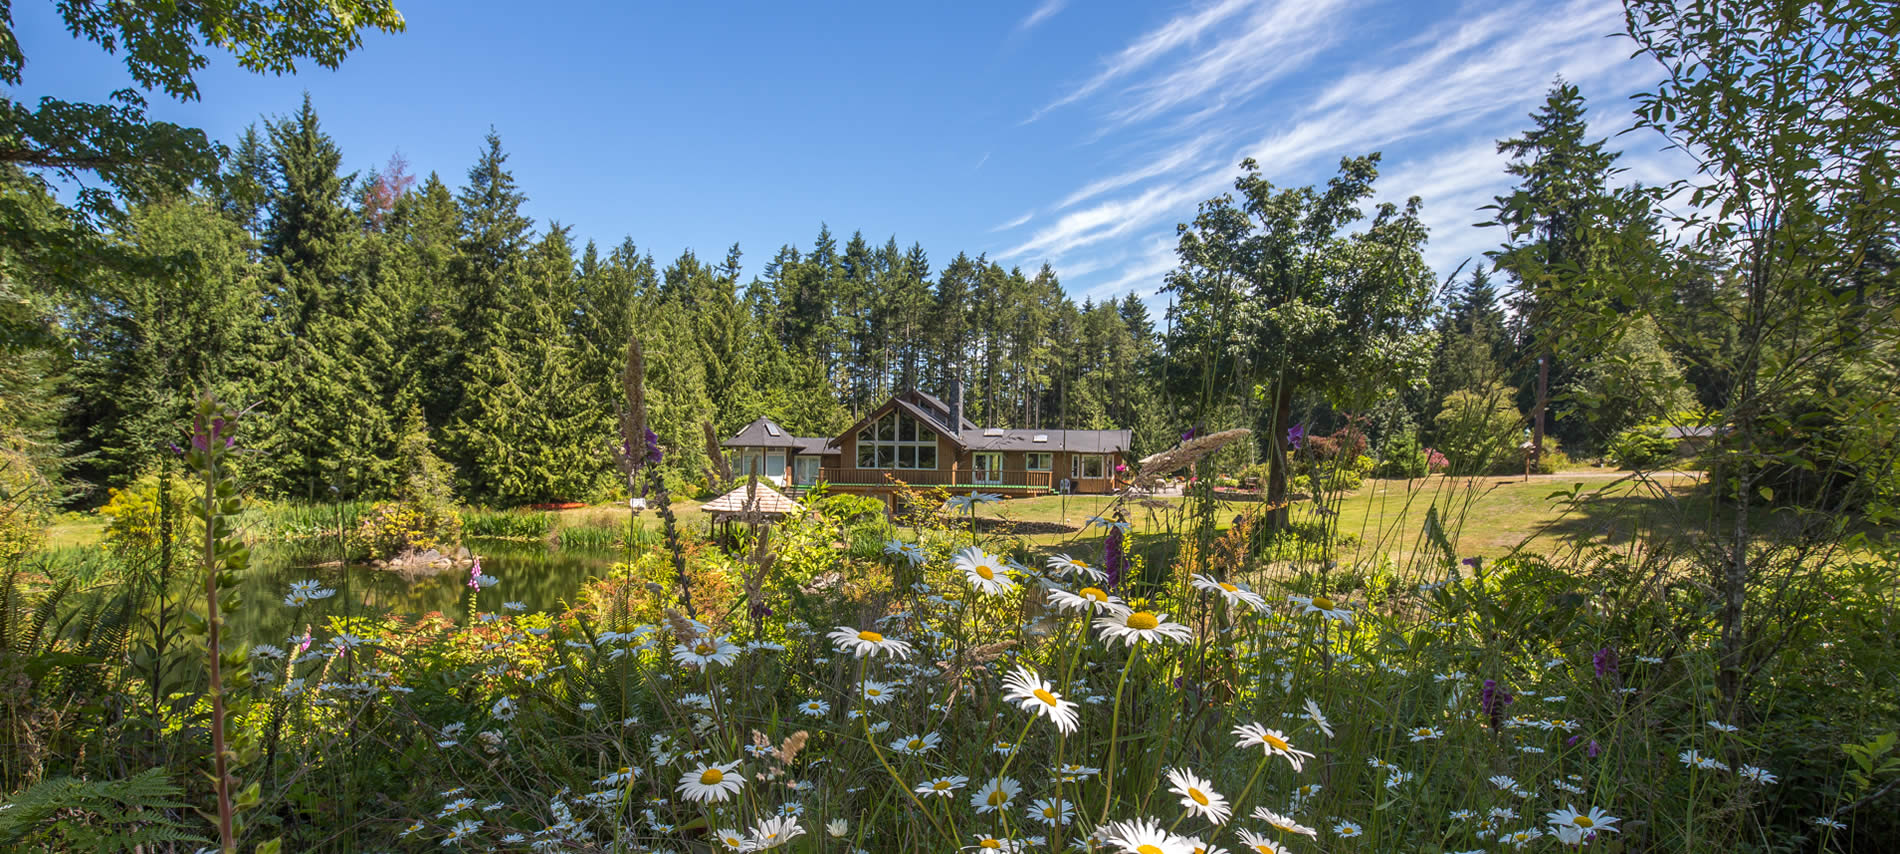 port angeles vacation cottages & cabins near olympic national park